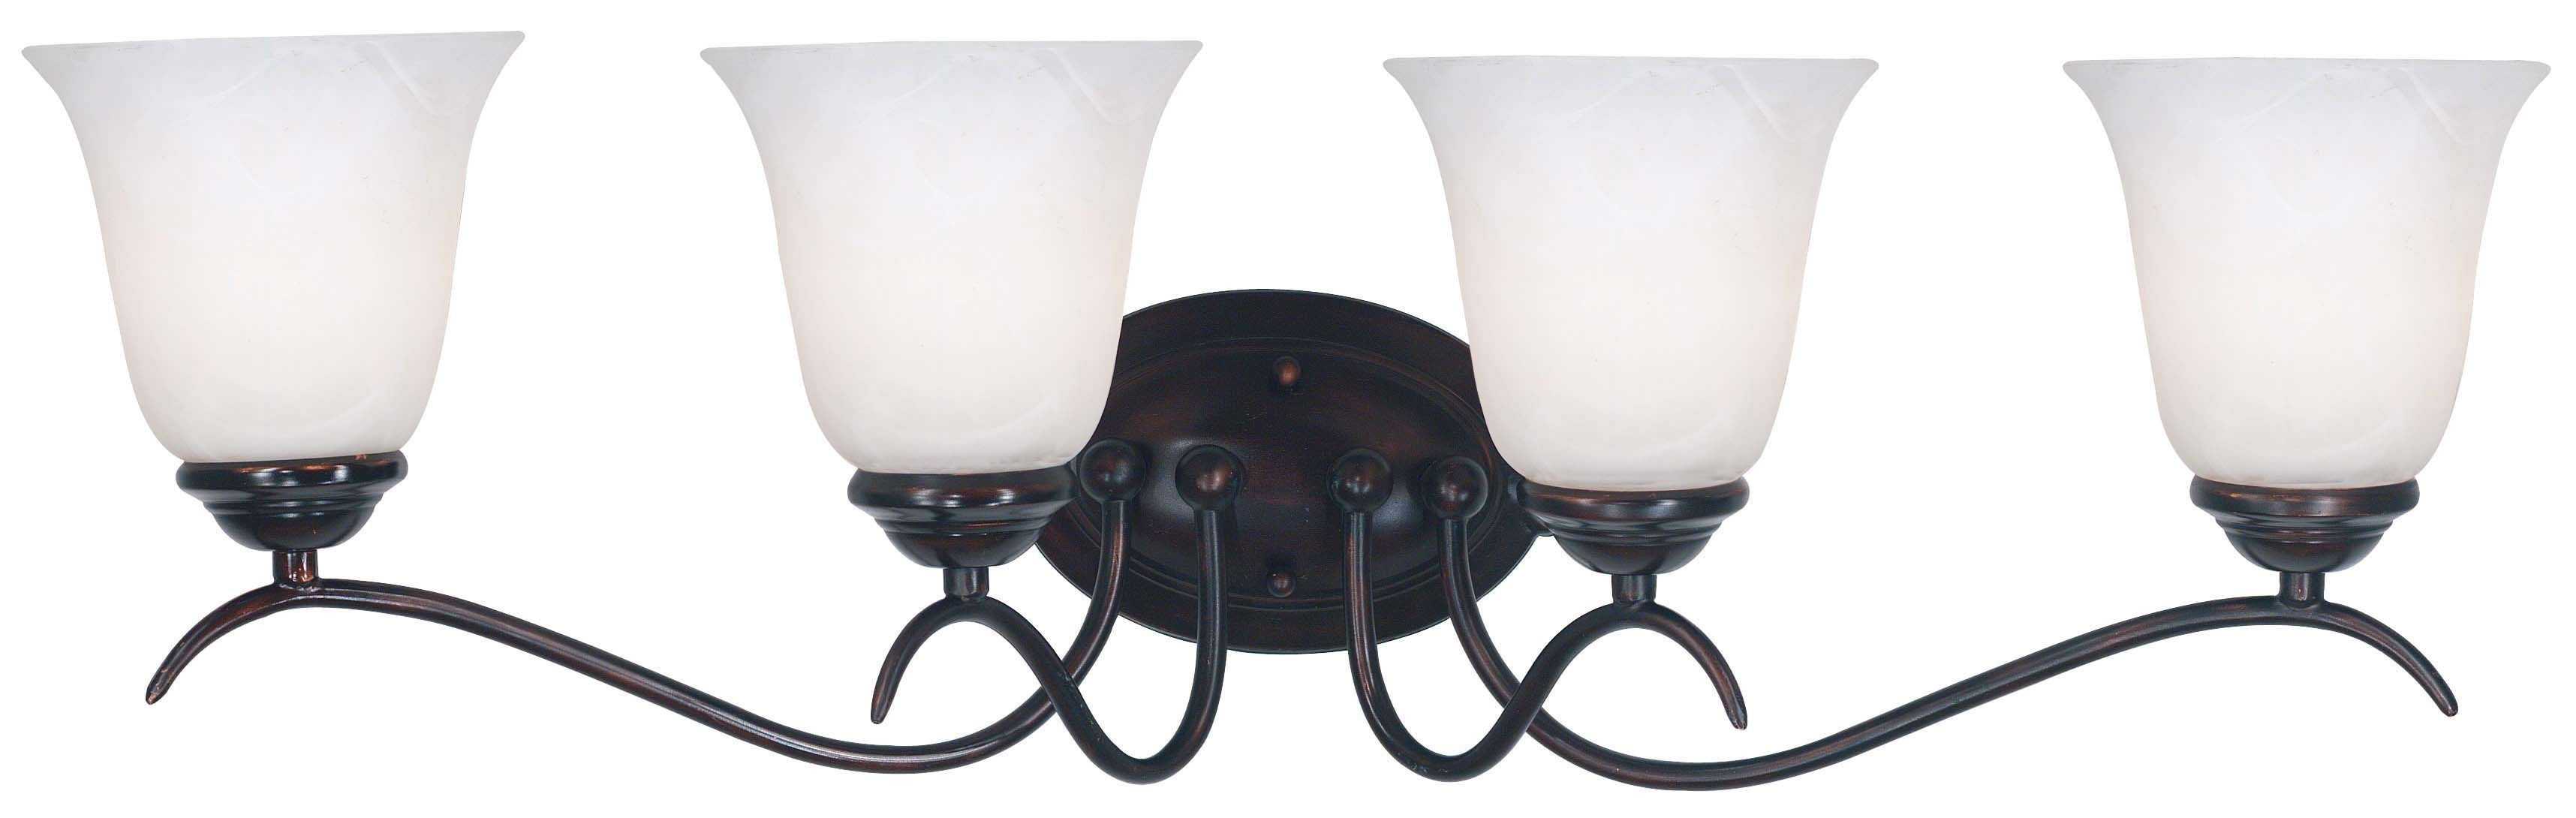 Oil Rubbed Bronze Chairs ~ Medusa oil rubbed bronze light vanity from kenroy